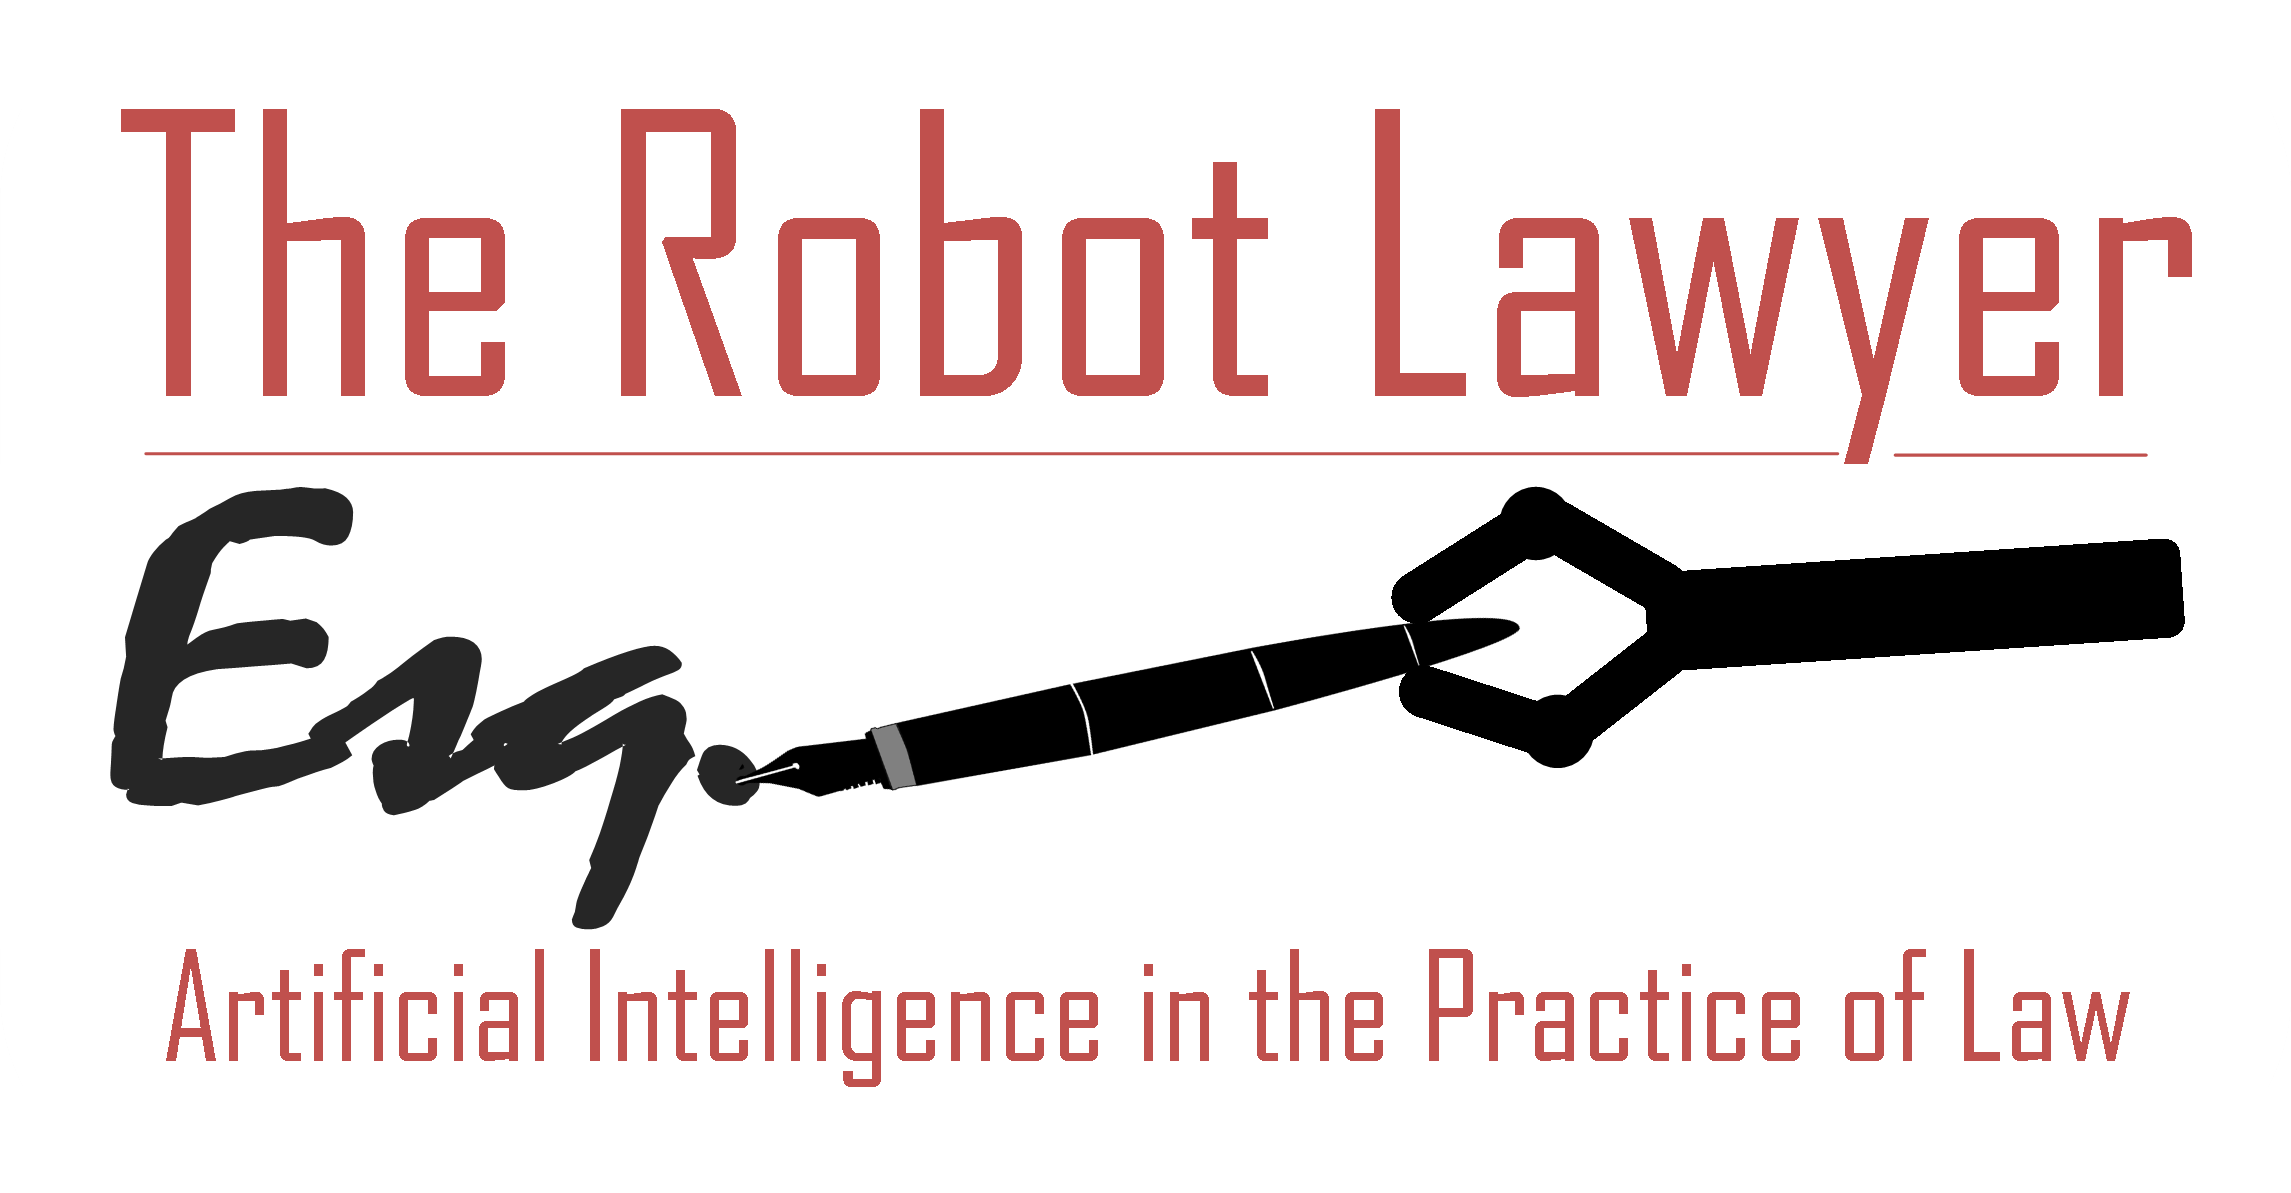 The Robot Lawyer - Artificial Intelligence in the Practice of Law